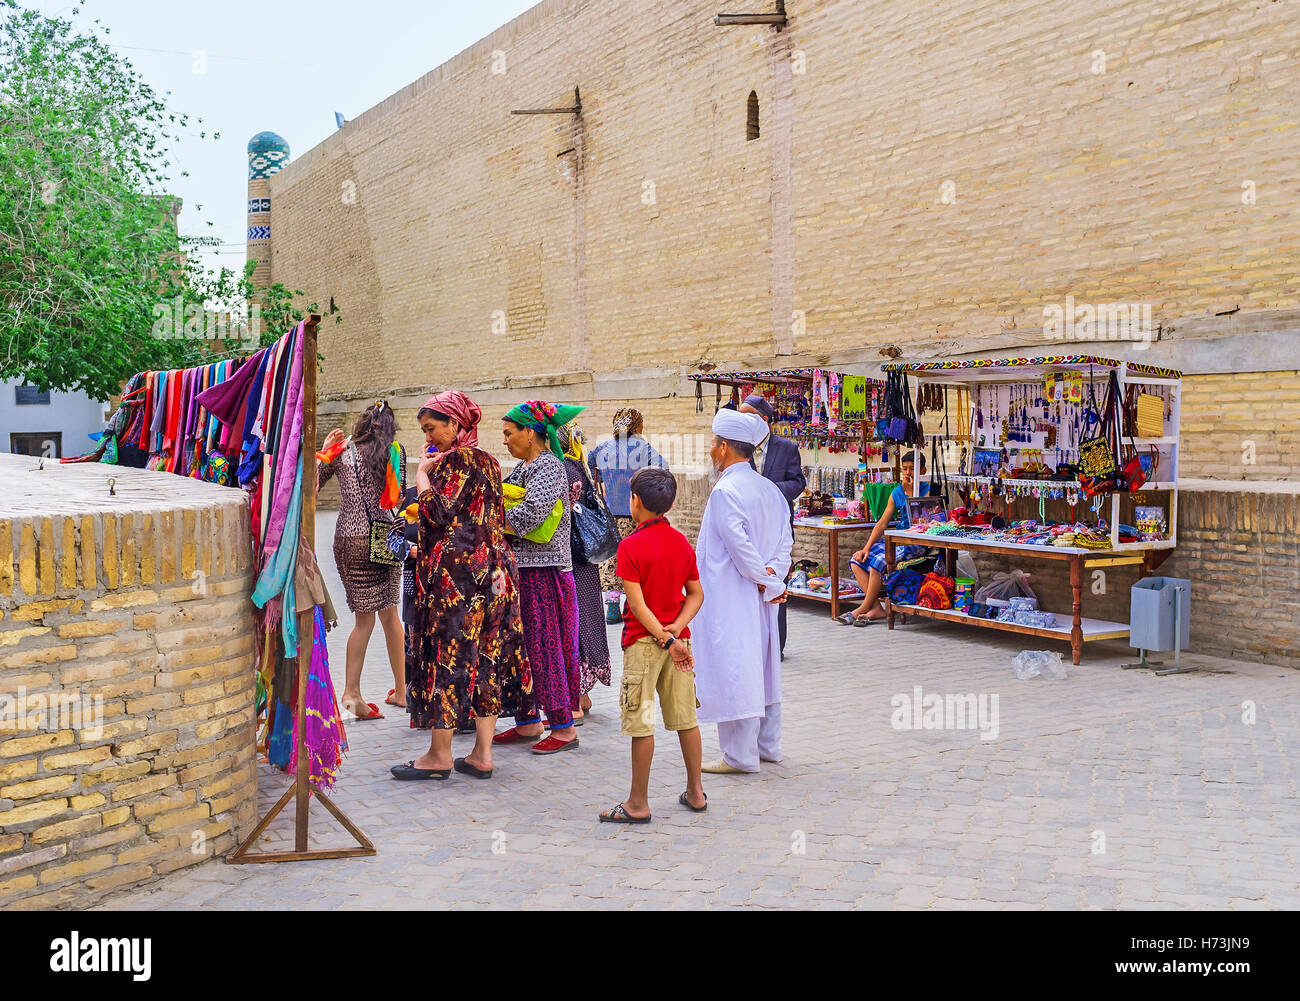 The Uzbek family in traditional costumes choose the gifts at market stall - Stock Image